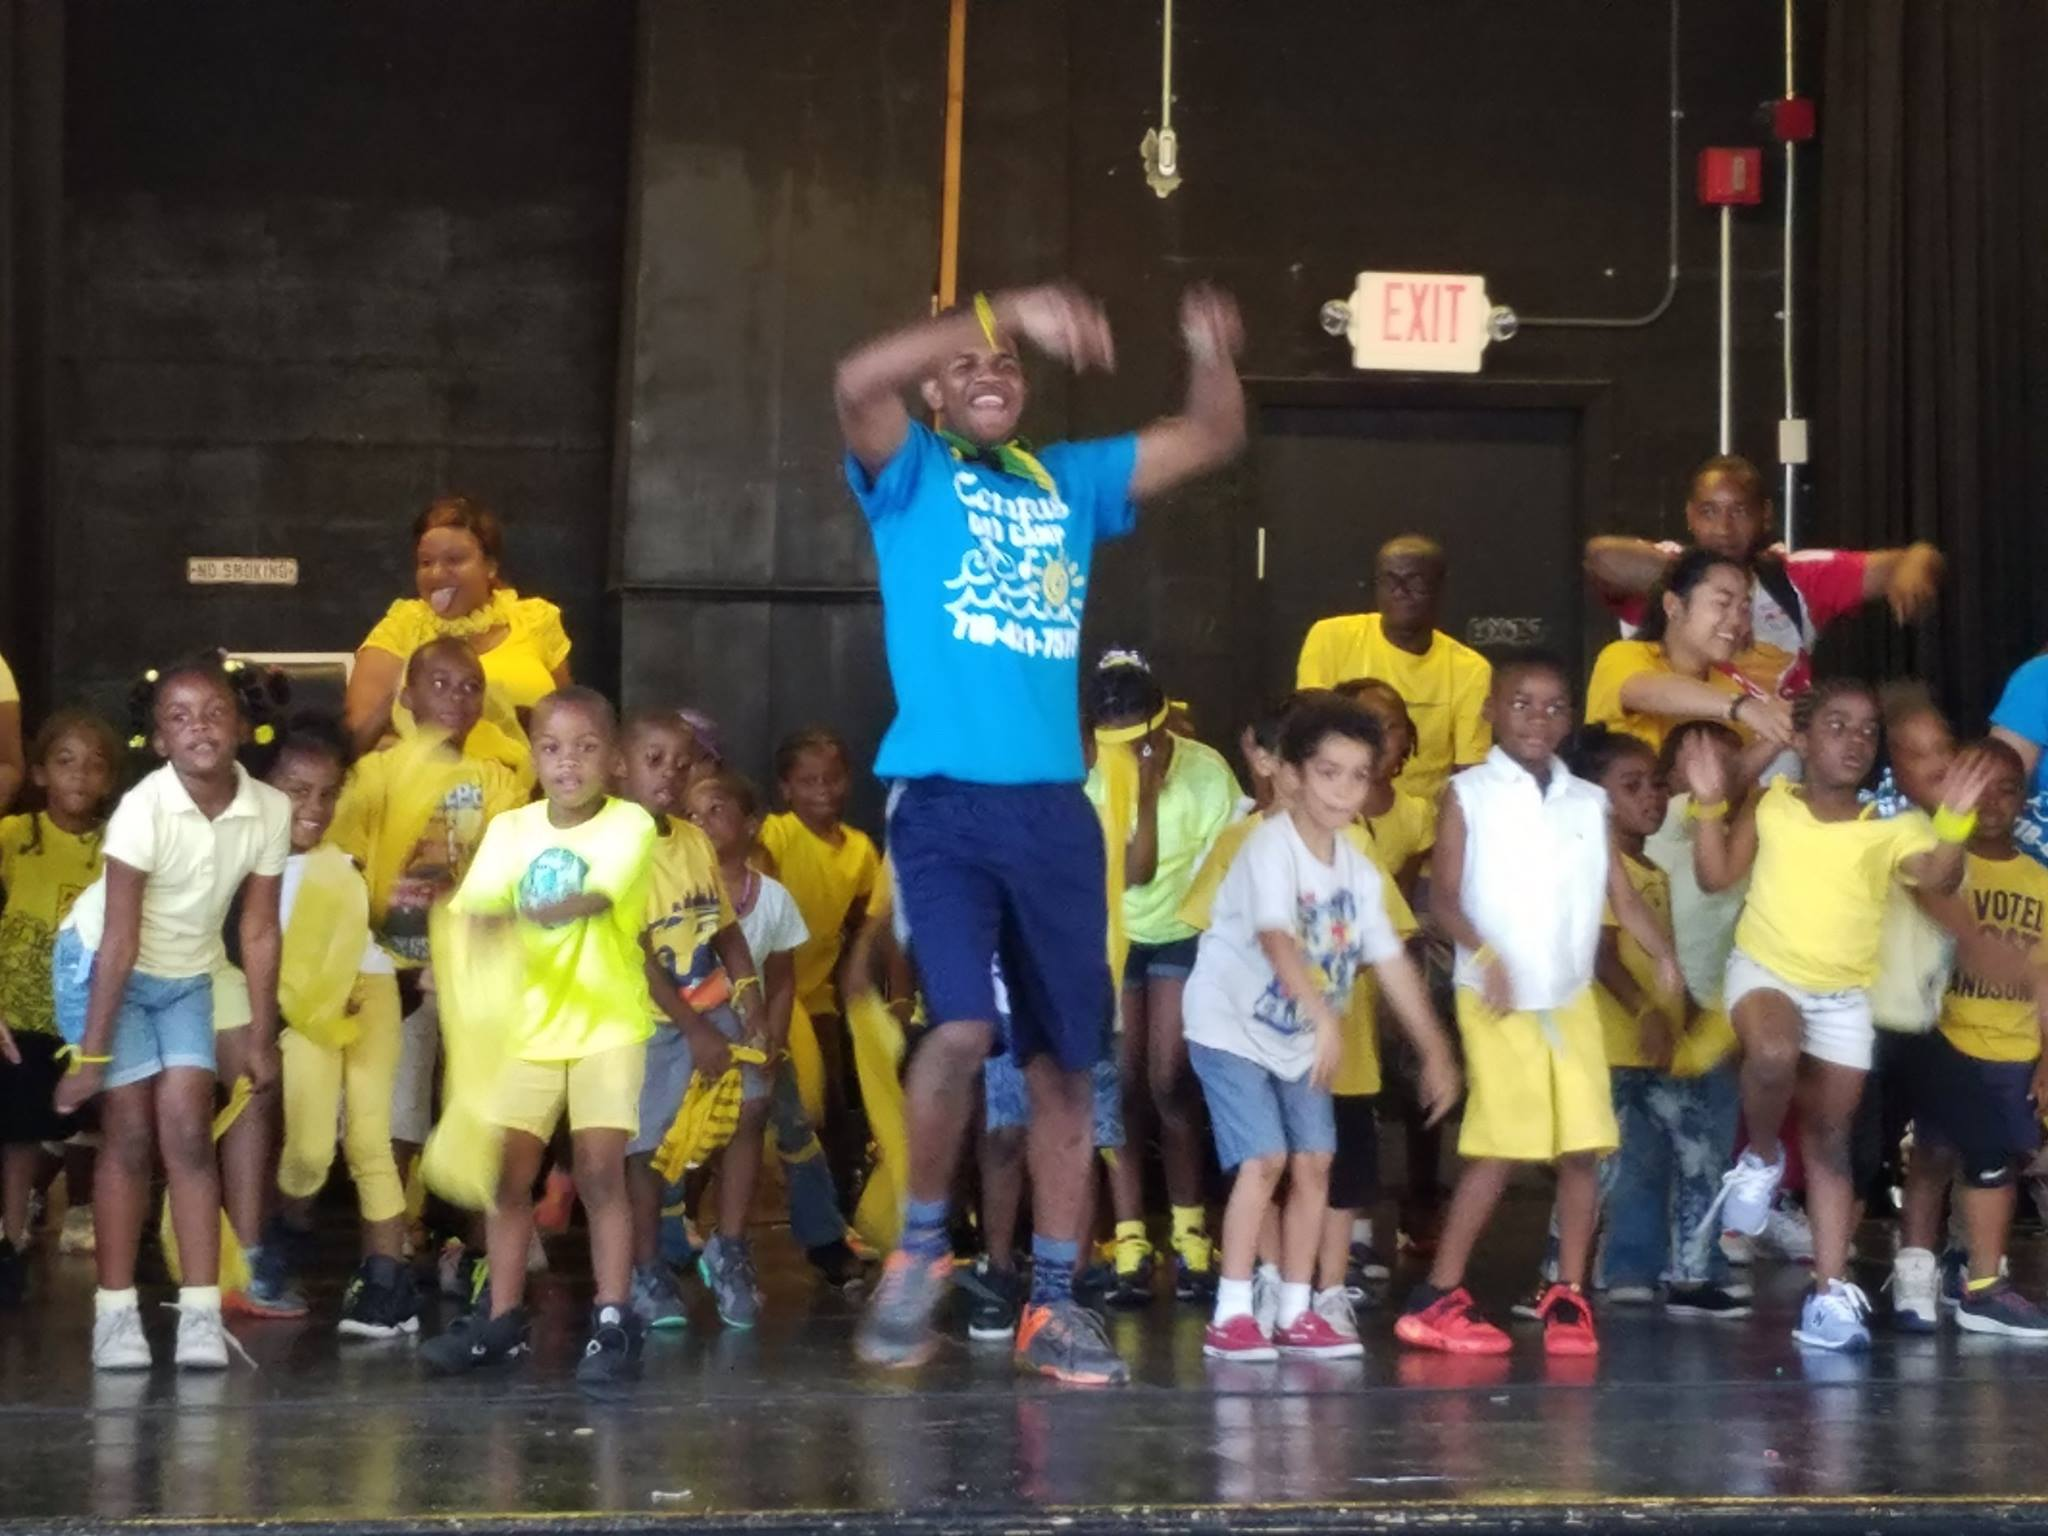 Brooklyn After School Program - Staff and Children Dancing at Campus